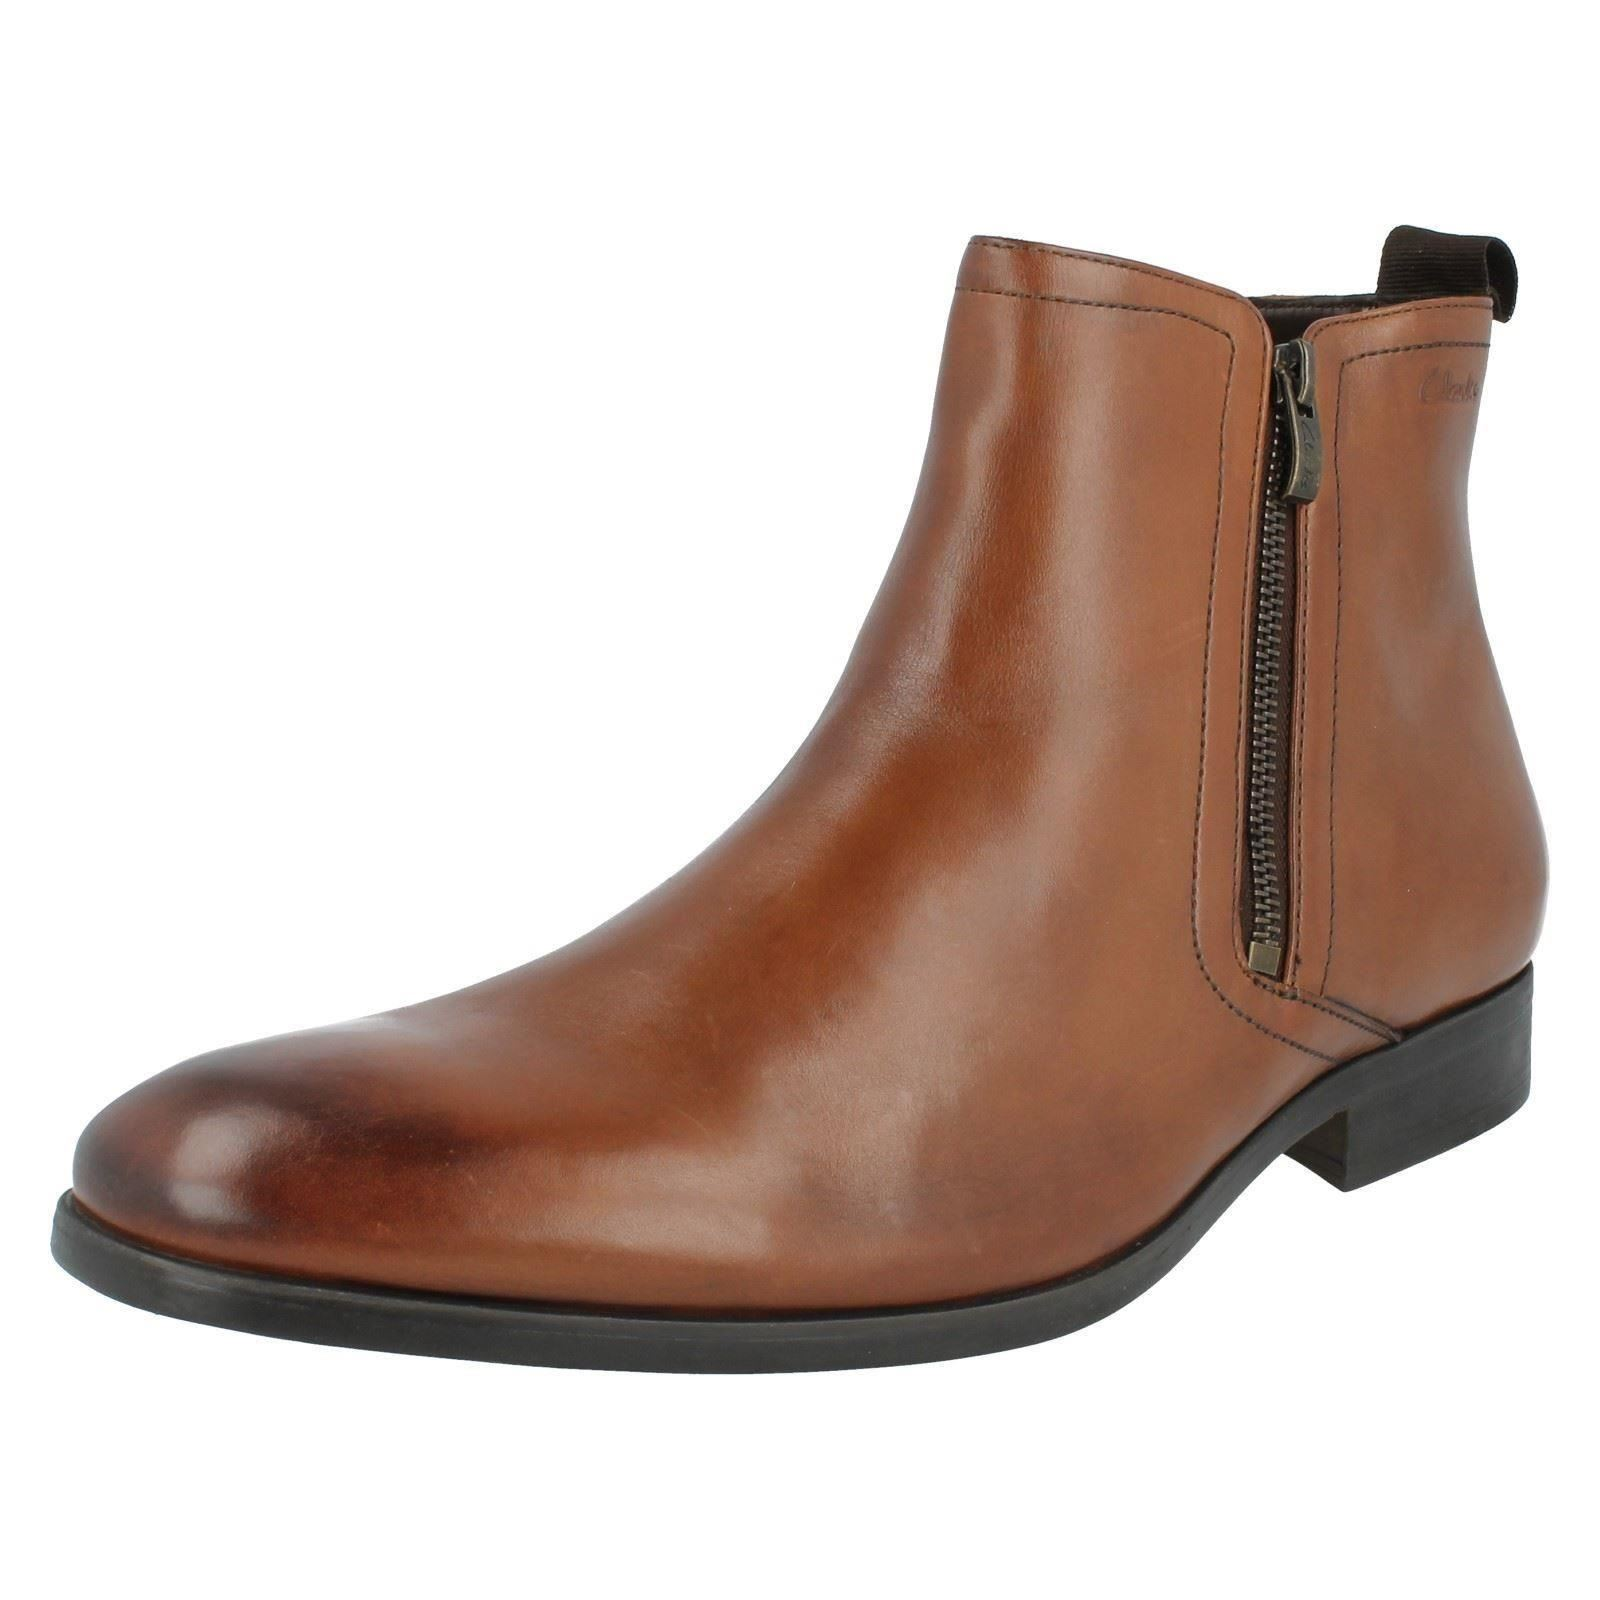 Men's Clarks Smart Ankle Boots Style - Banfield Zip